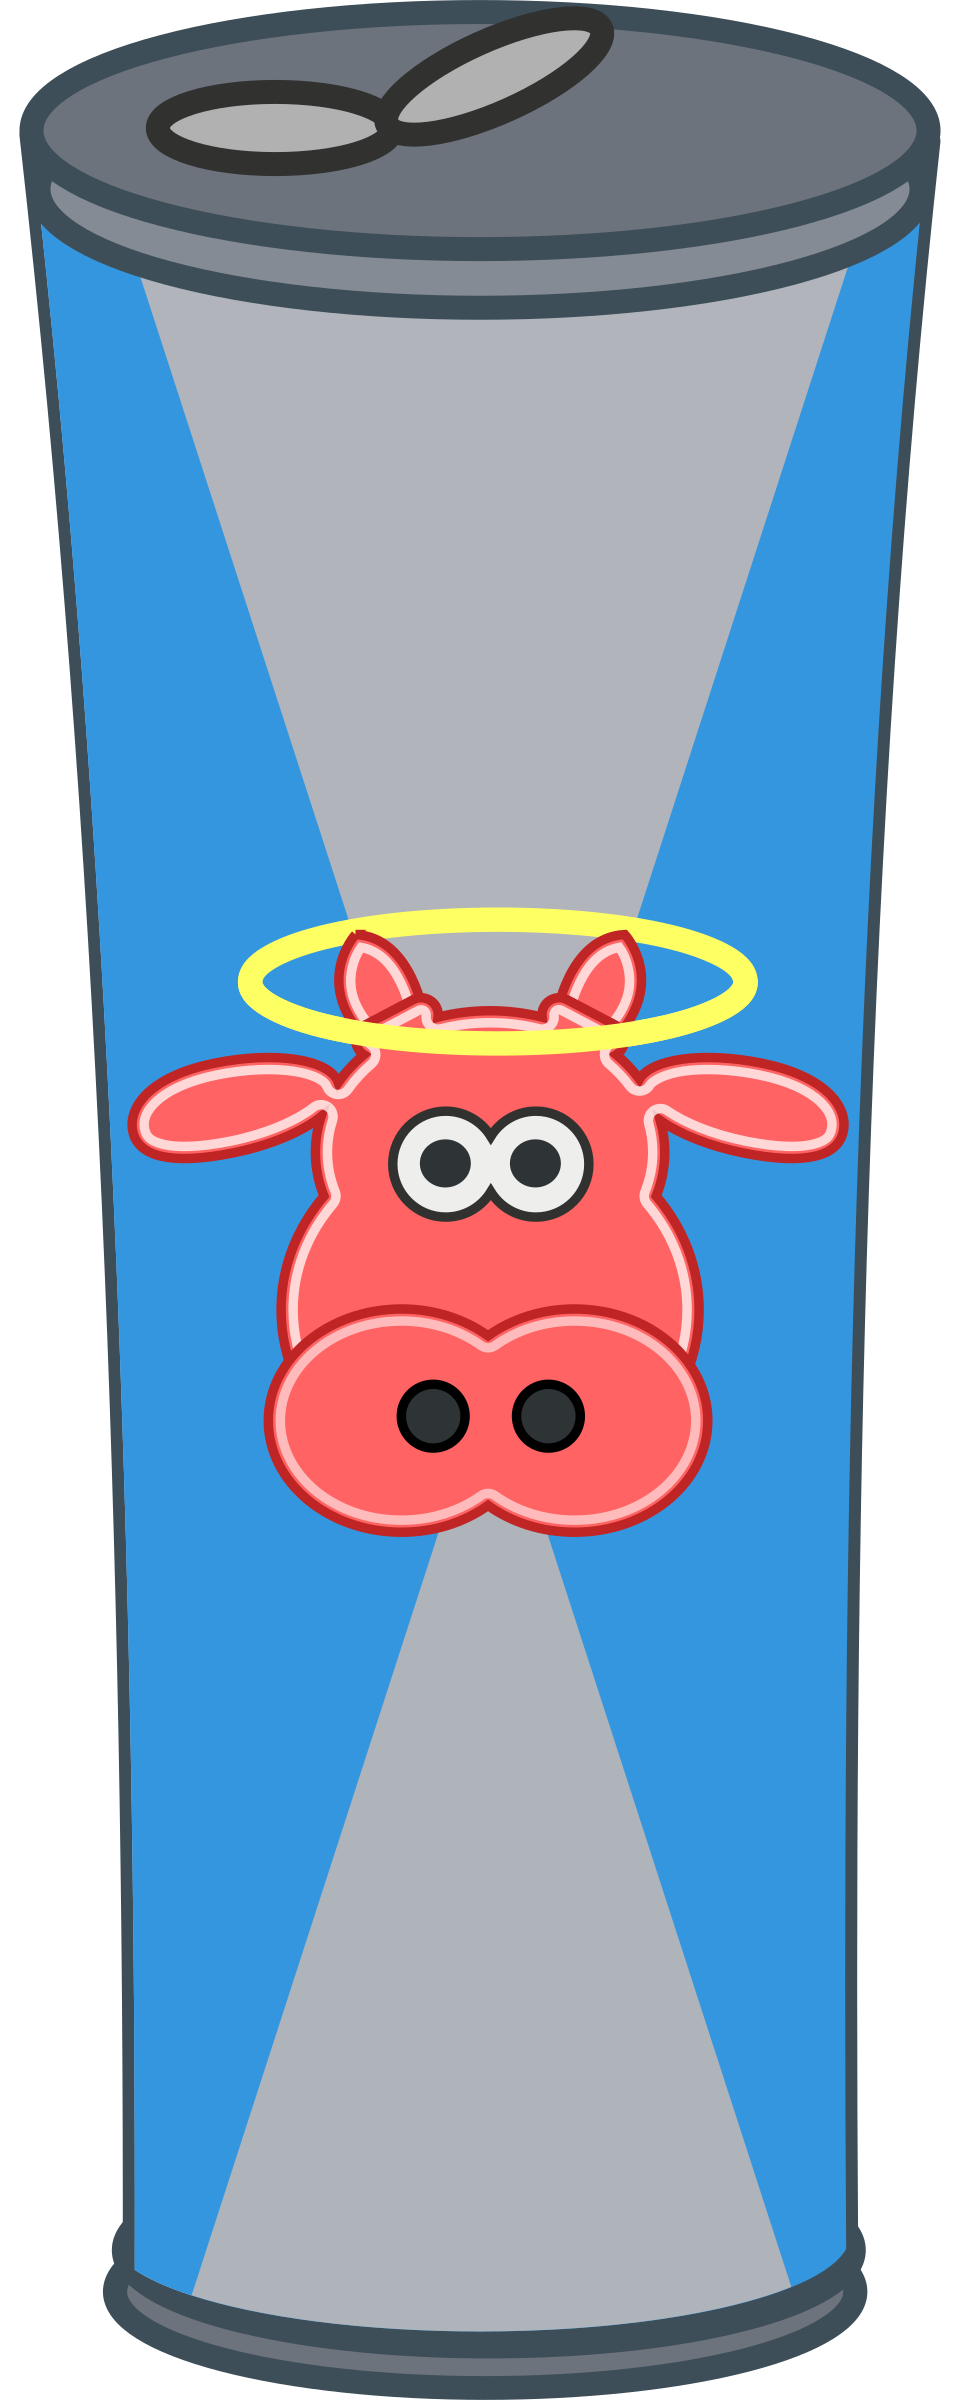 Simple Cartoon Energy Drink Can by qubodup